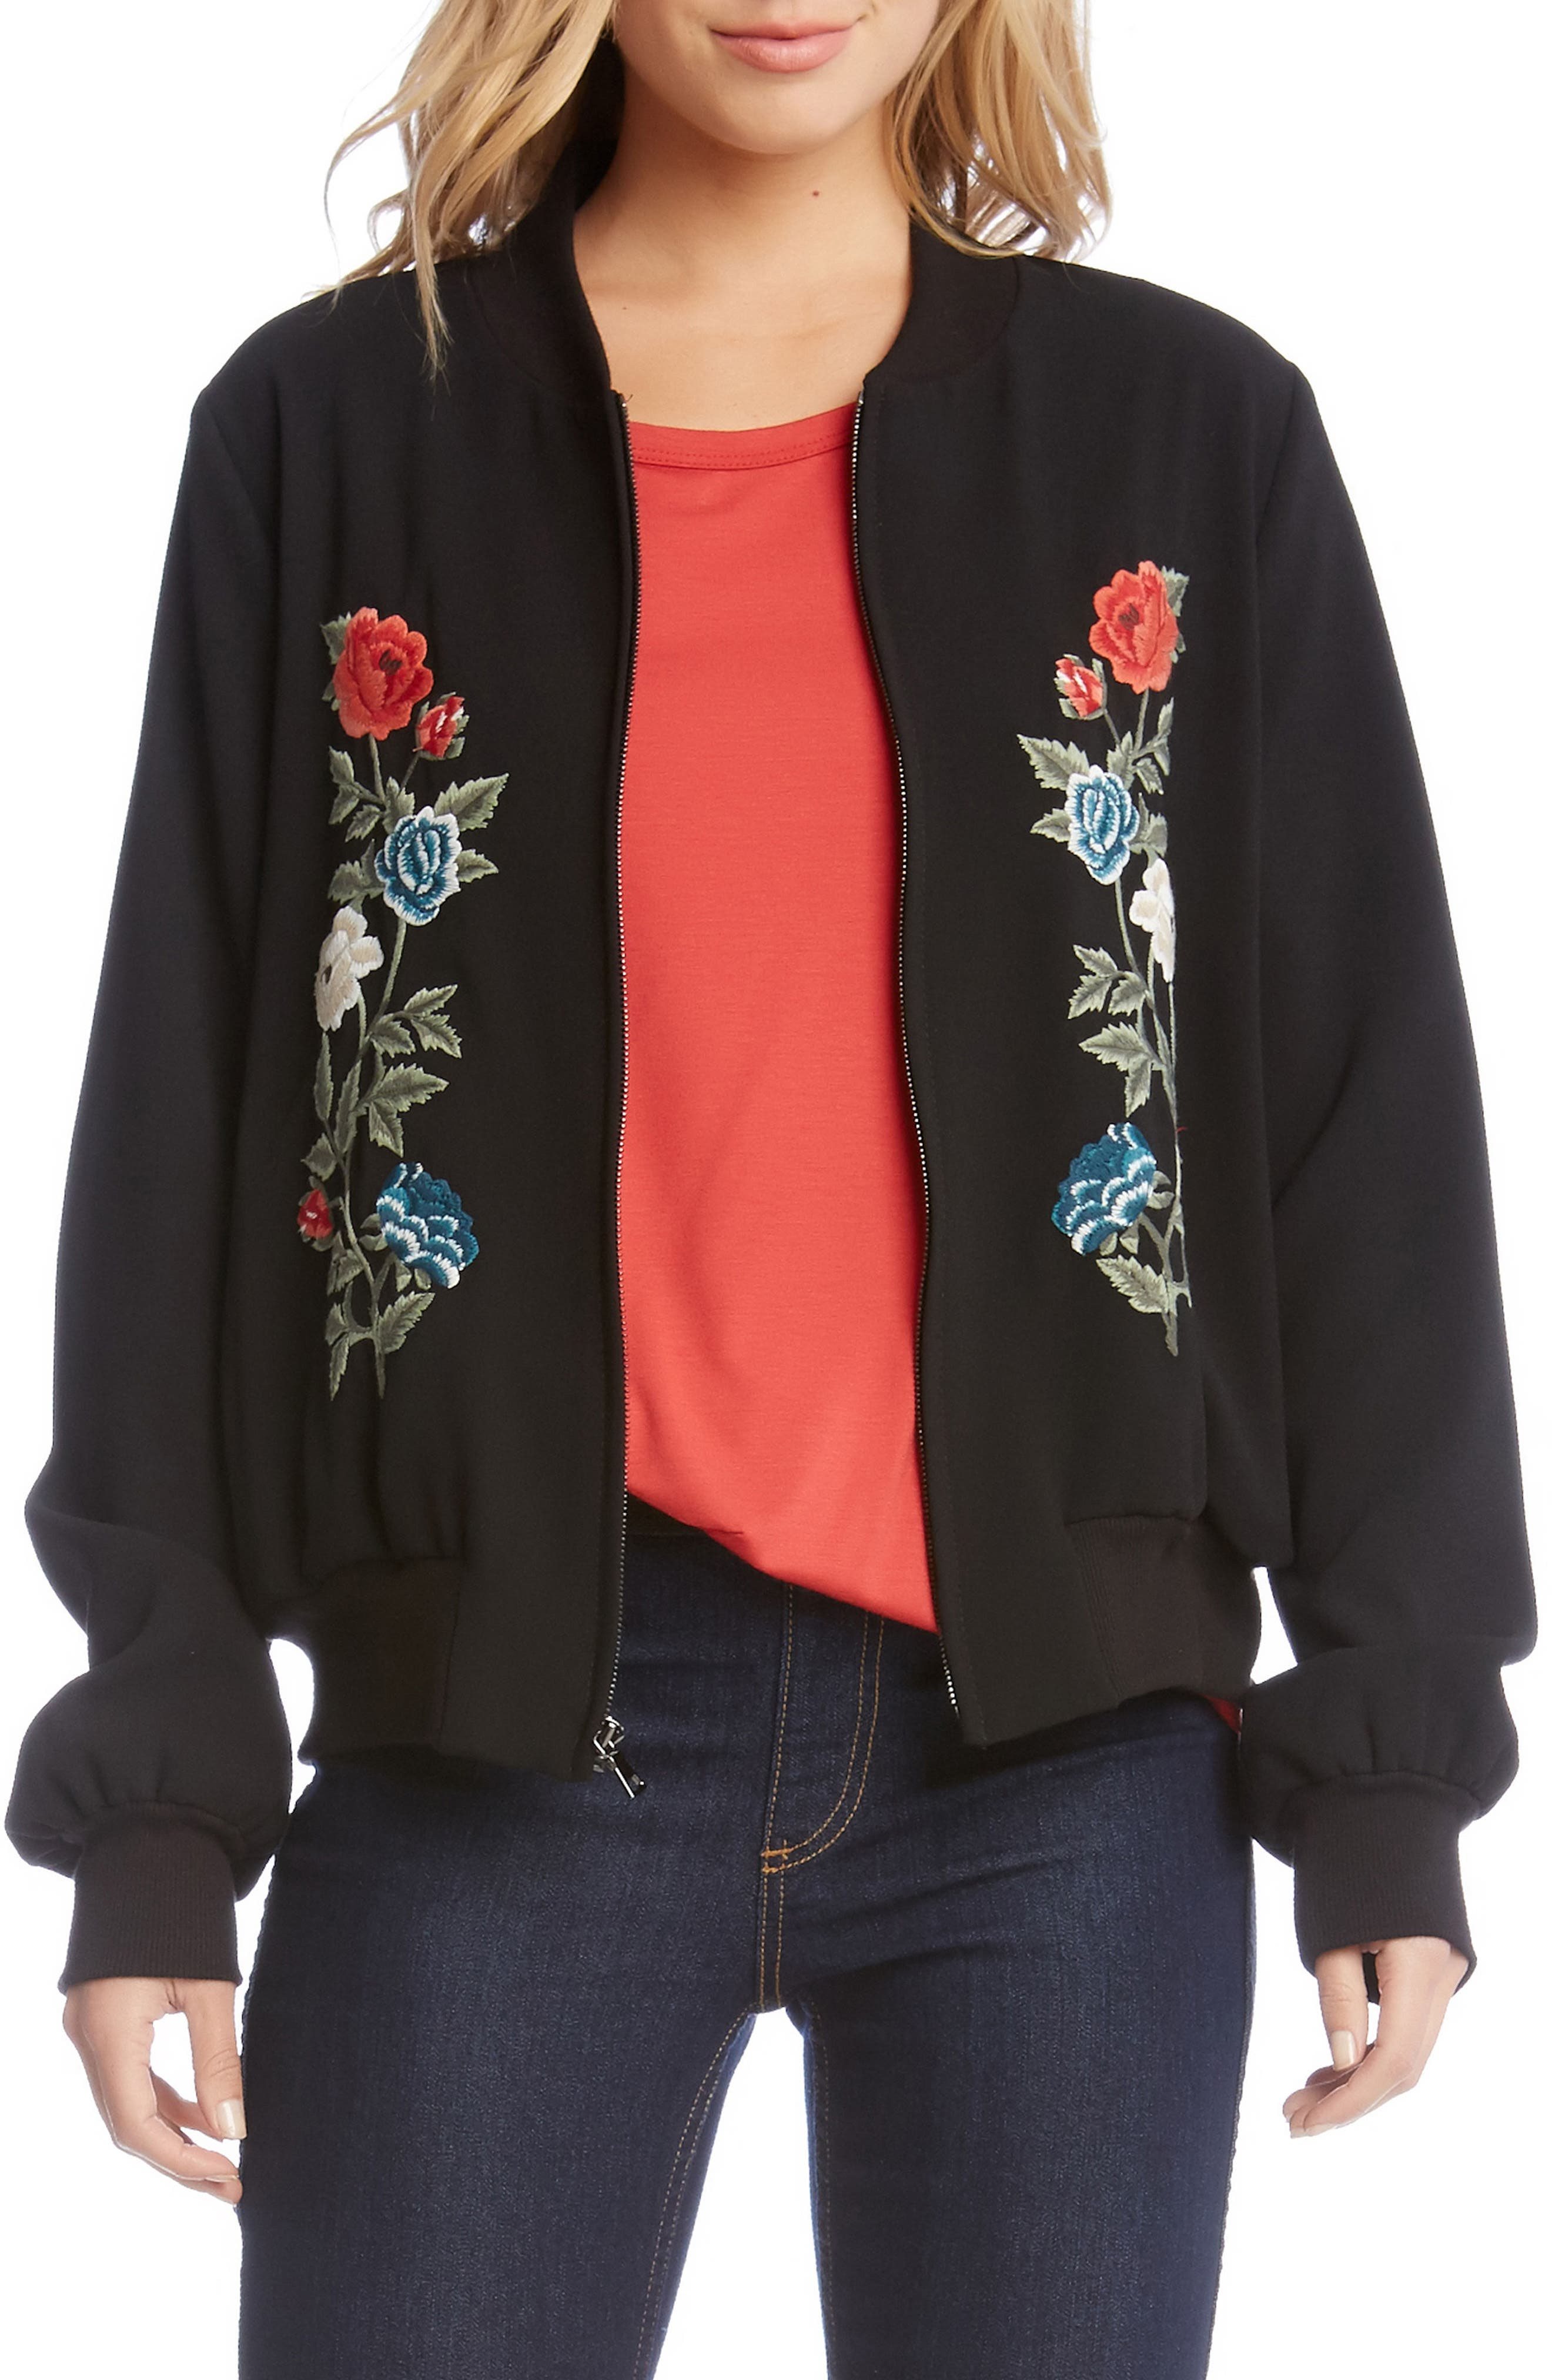 Embroidered Bomber Jacket,                         Main,                         color, Black